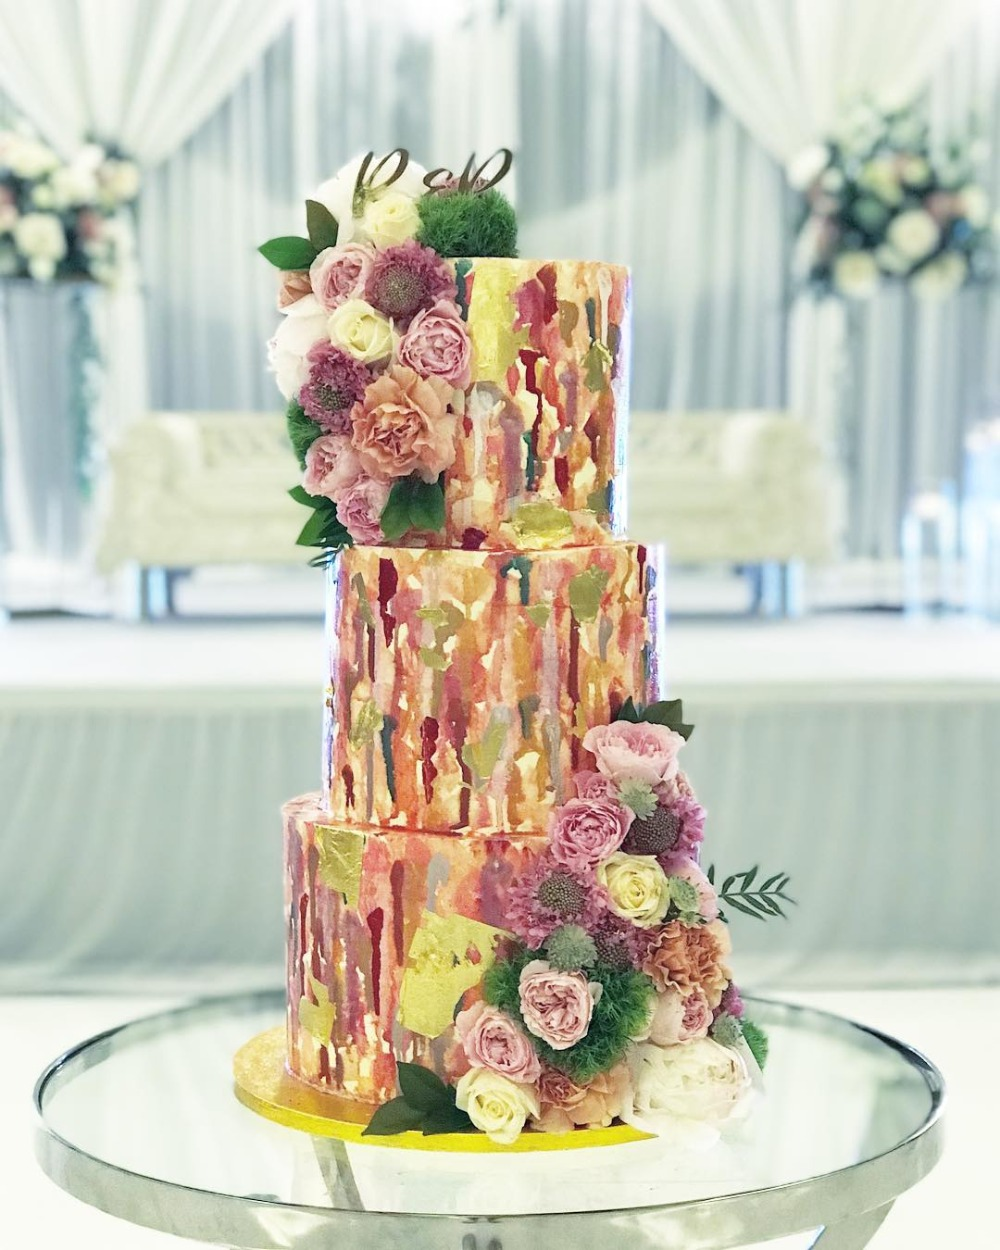 Trending 12 Cakes That Prove Edible Art Is Alive And Well